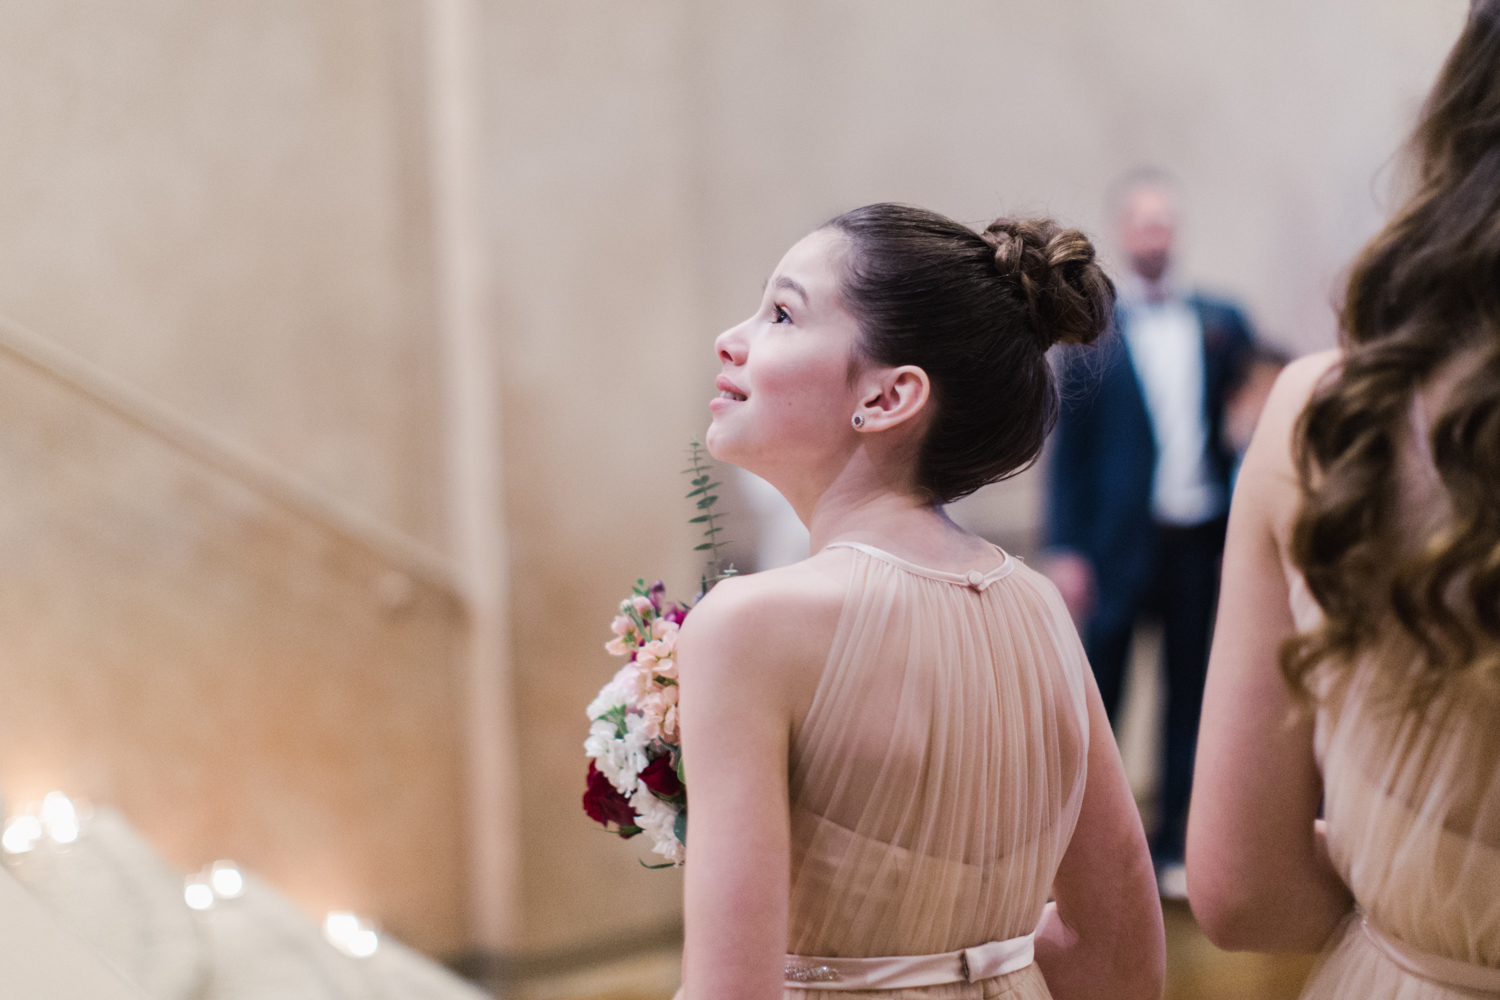 Bridesmaids watching her mother walk down the aisle with tears and emotion in her eyes.